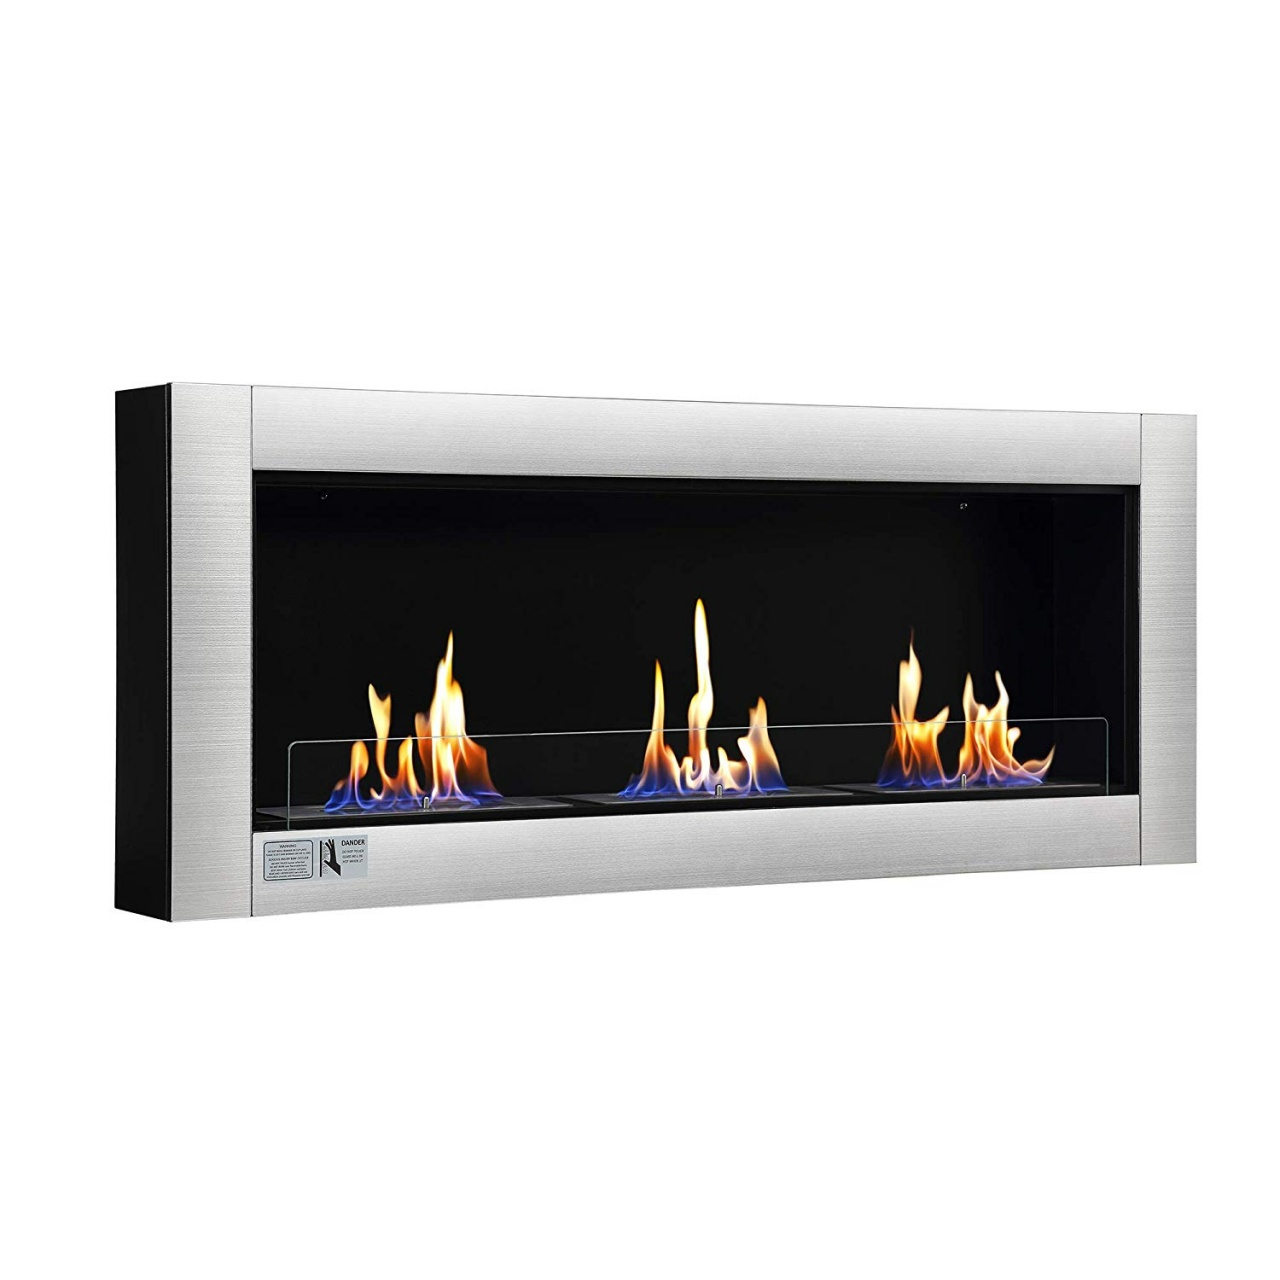 wall mounted electric fireplace design ideas antarctic star 52 inch ventless ethanol from wall mounted electric fireplace design ideas